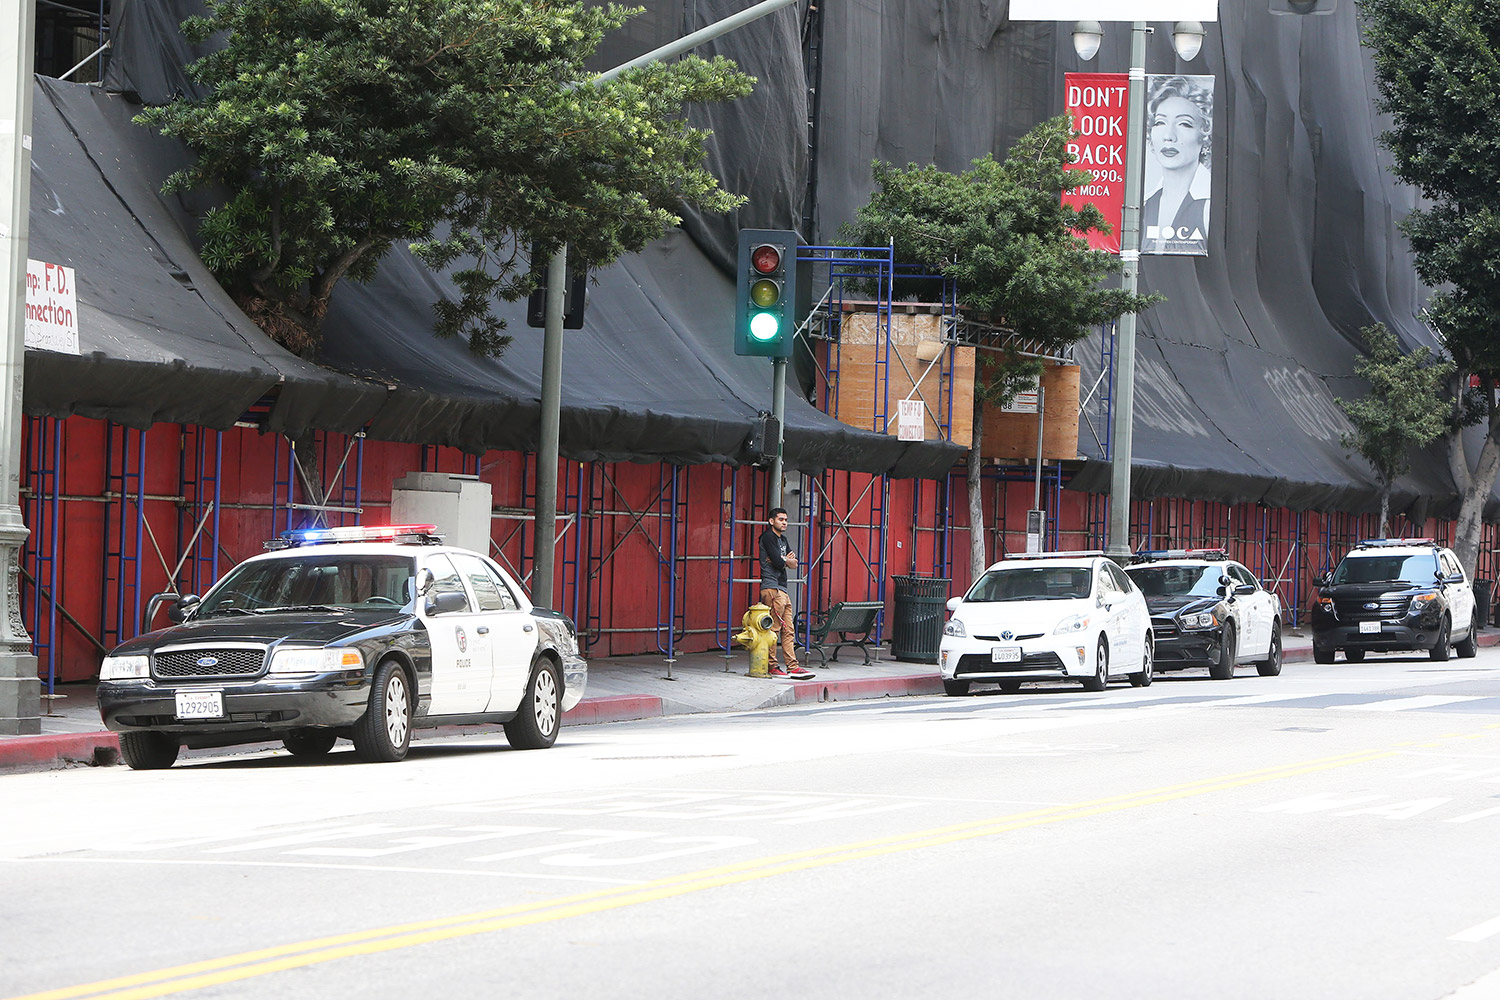 Police outside Amber Heard's downtown Los Angeles apartment amid claims Johnny Depp's people are removing items.